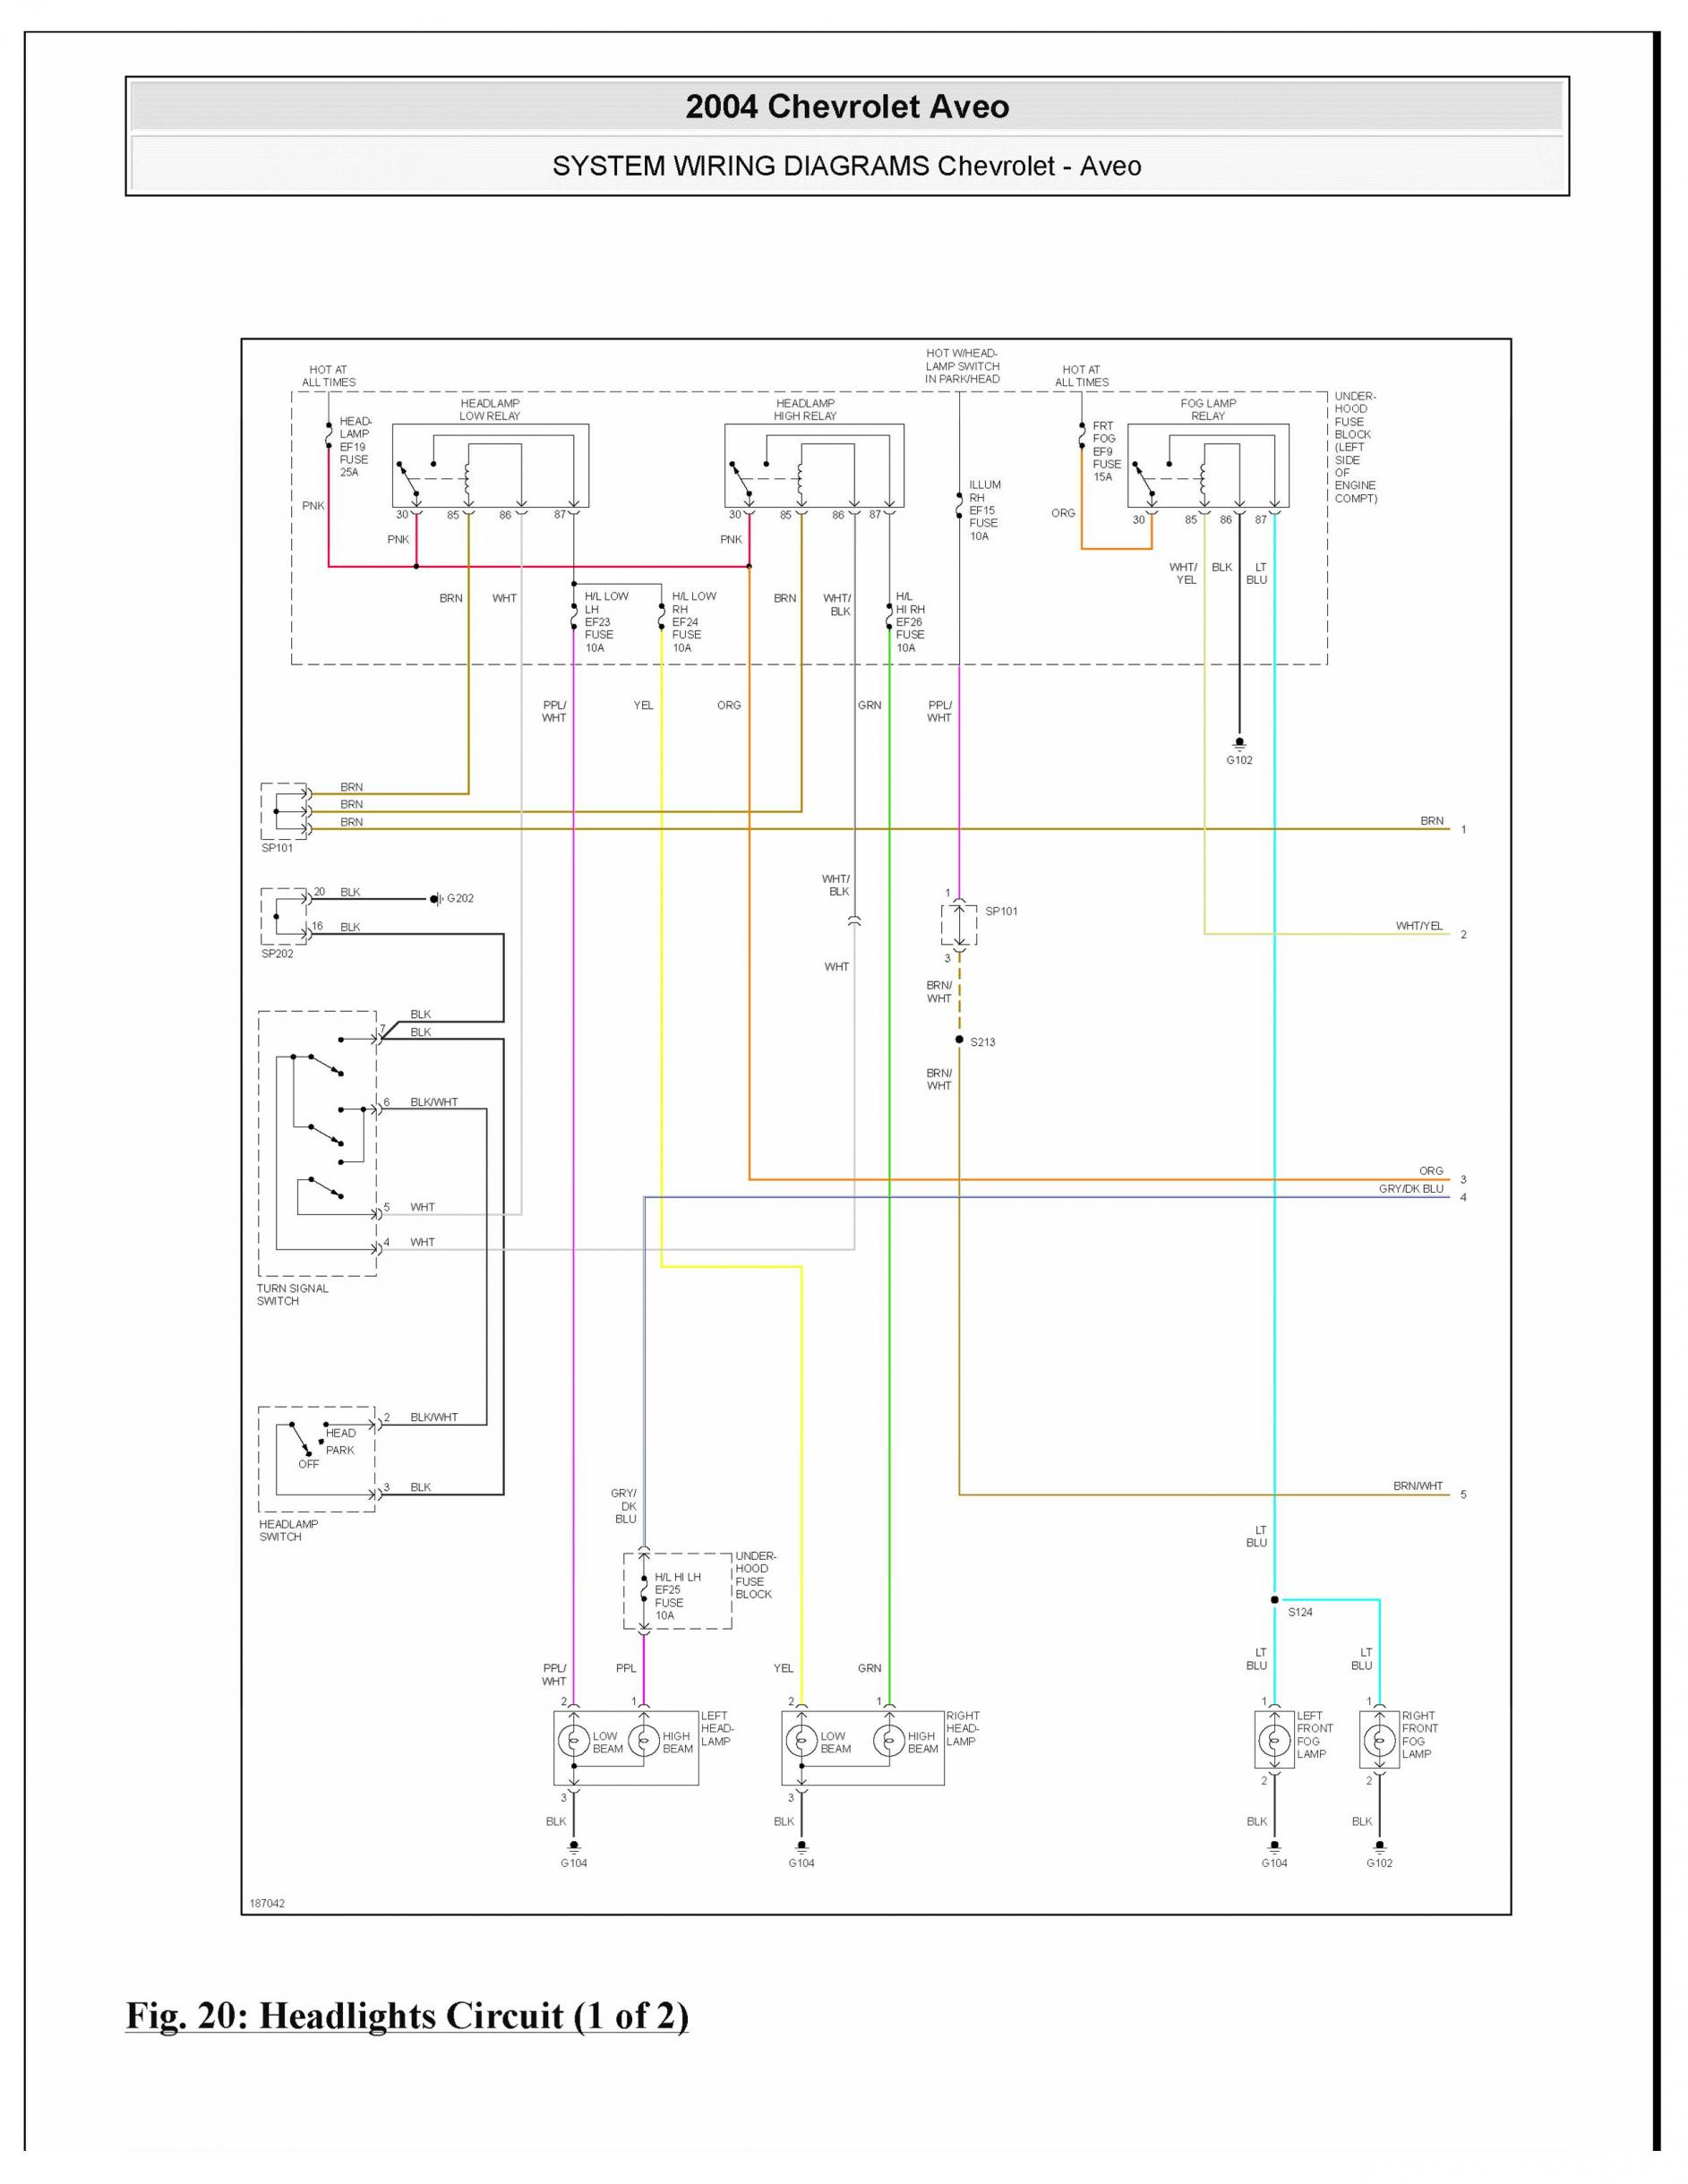 no headlights can find a wiring diagram rh aveoforum com 2004 Chevy Aveo  2005 Chevy Aveo